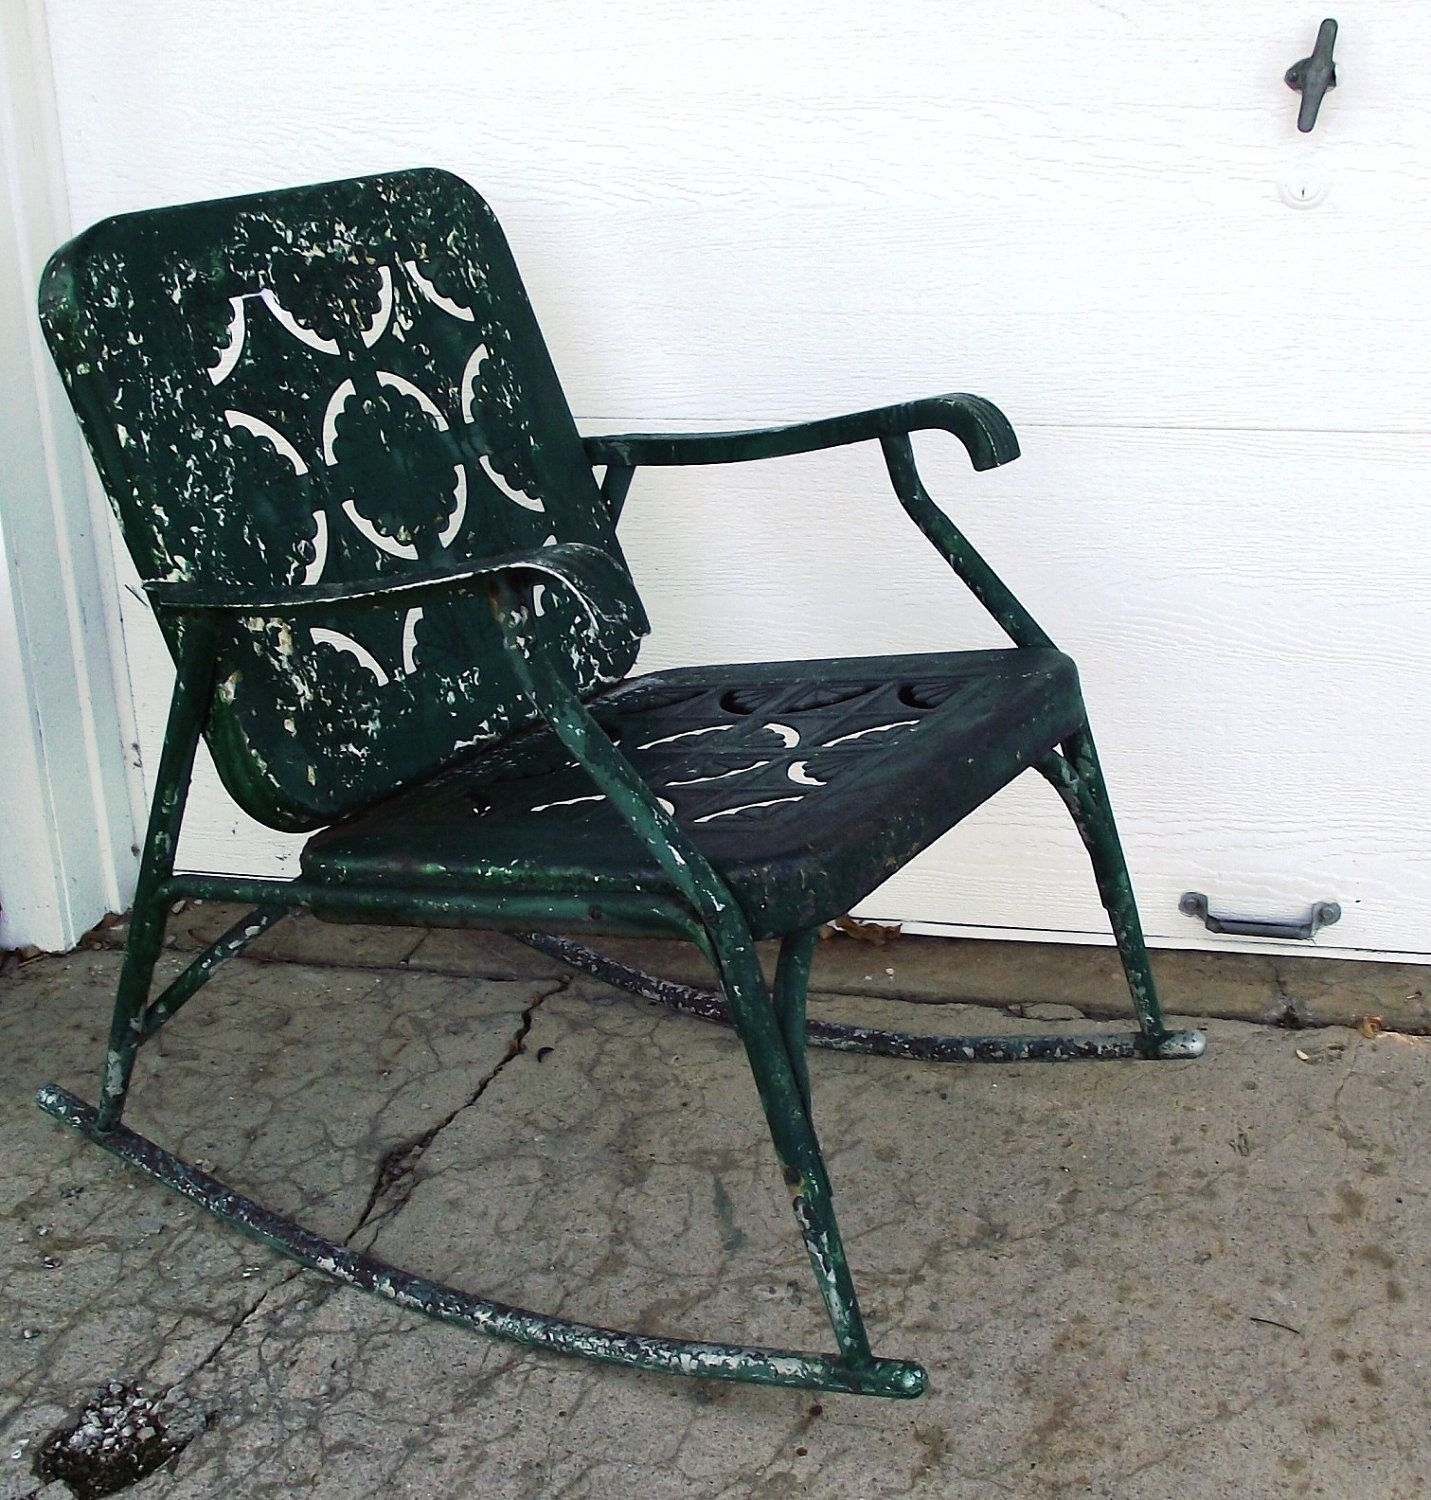 Vintage Garden Green Metal Rocking Chair Cutoutjodysvintage In Vintage Metal Rocking Patio Chairs (View 11 of 15)